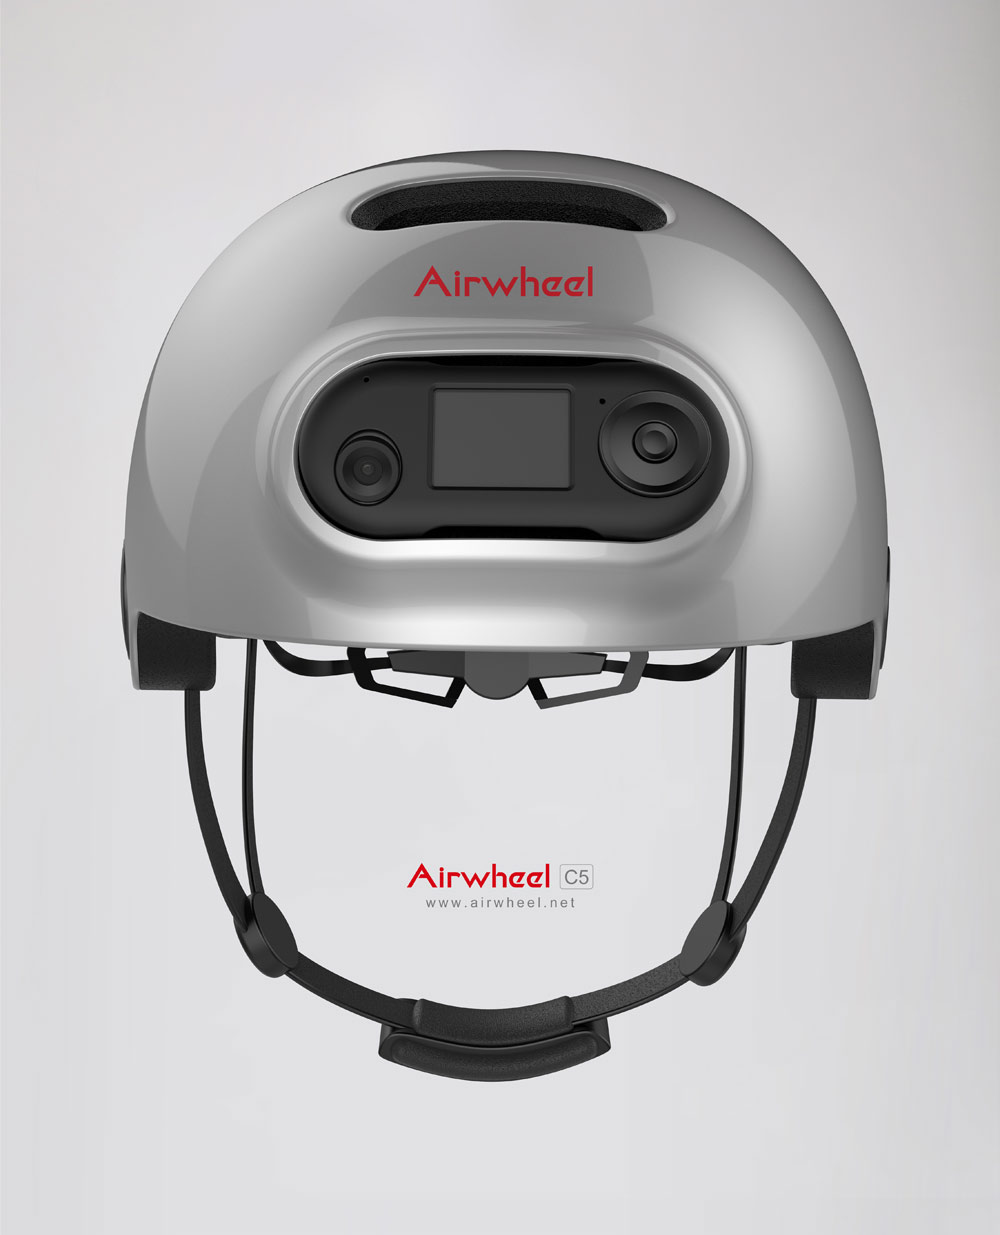 http://www.airwheel.net/skateboard/airwheel_c5.jpg